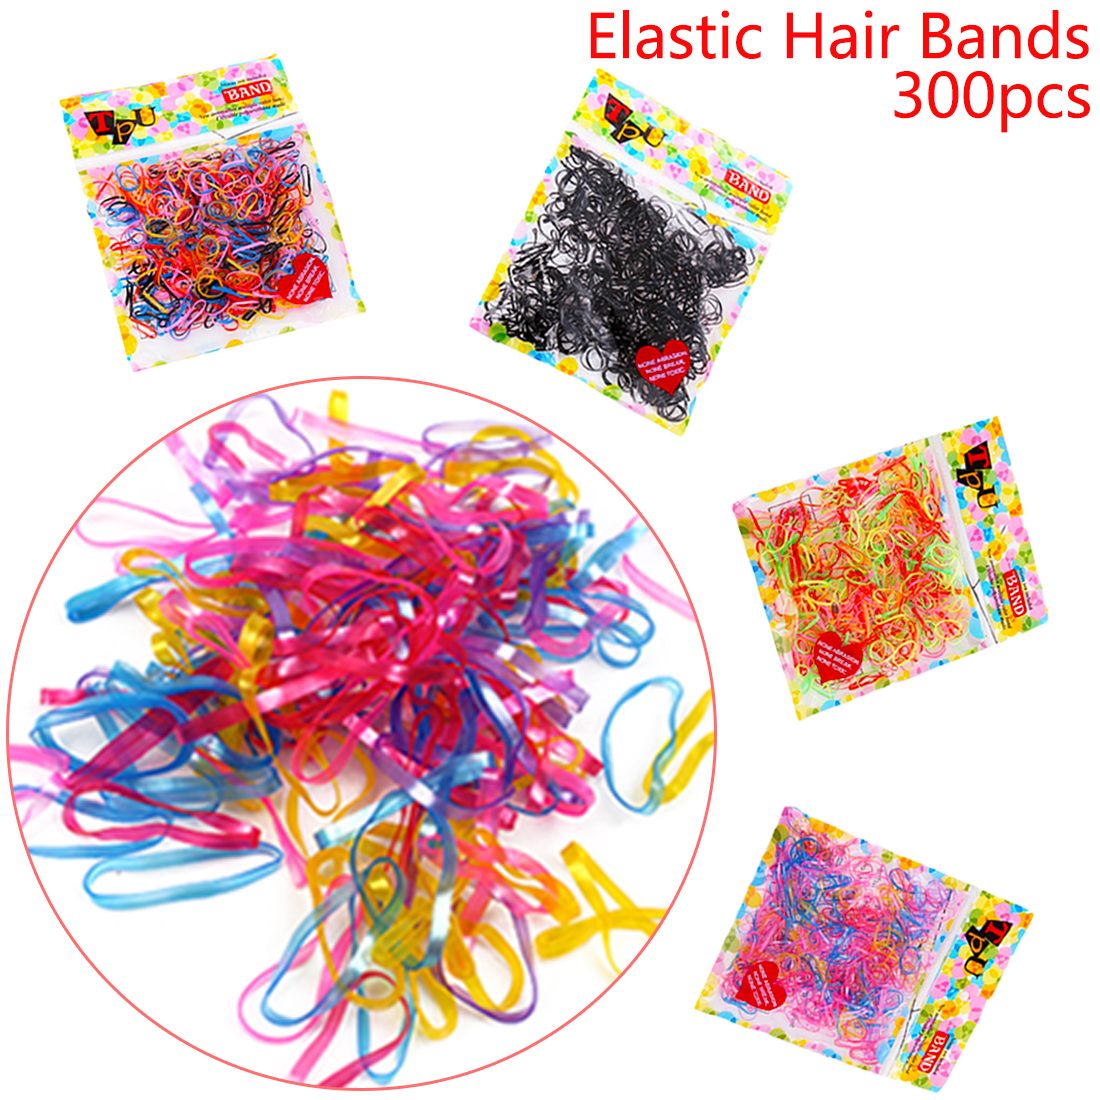 About 300pcs/lot Colorful Elastic Hair Band Holders Headwear Tie Gum Ponytail Holder Braiding Disposable Rubber Hair Accessories m mism 2pcs new rhinestone bead hair elastic band hair accessories rubber tie gum ponytail holder scrunchy for women girls